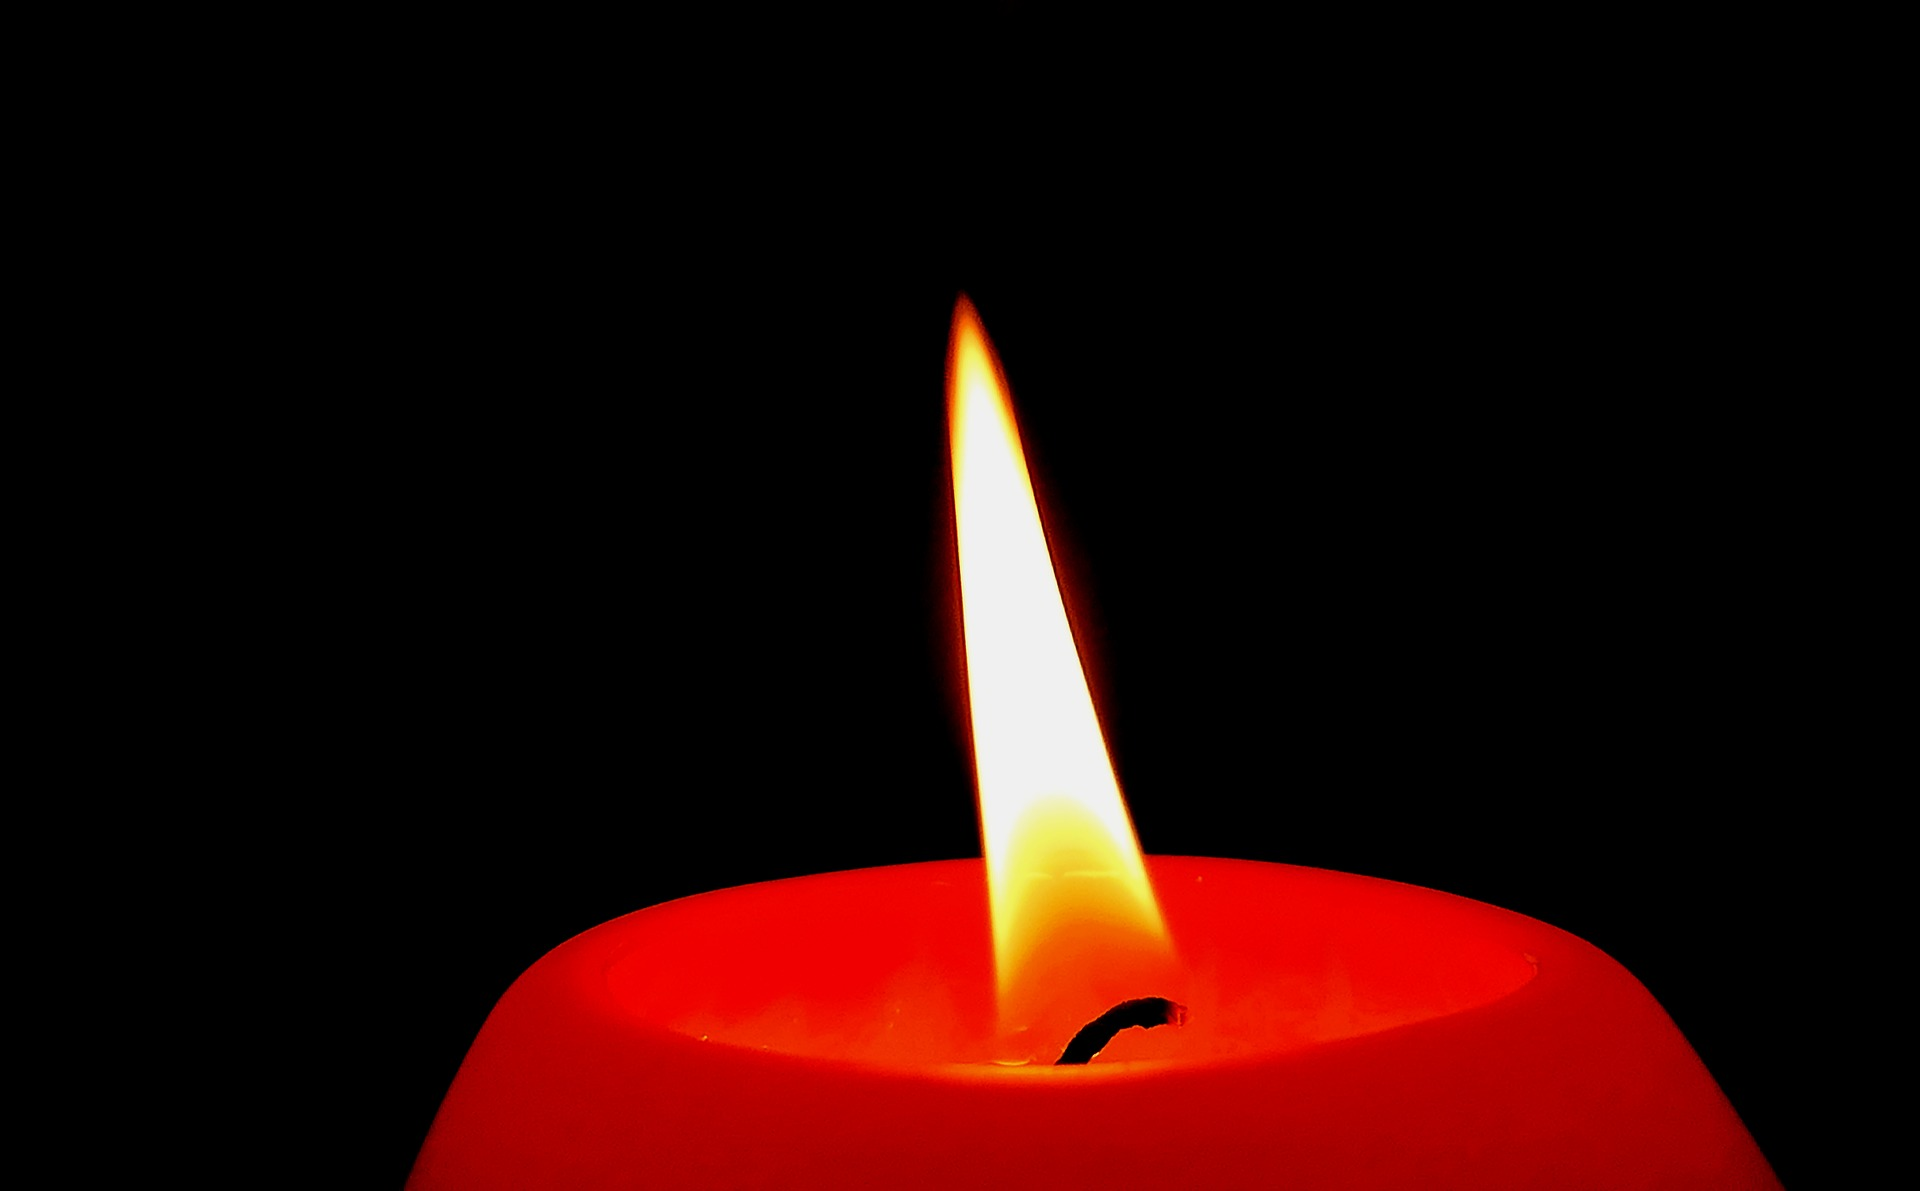 A picture of a candle burning